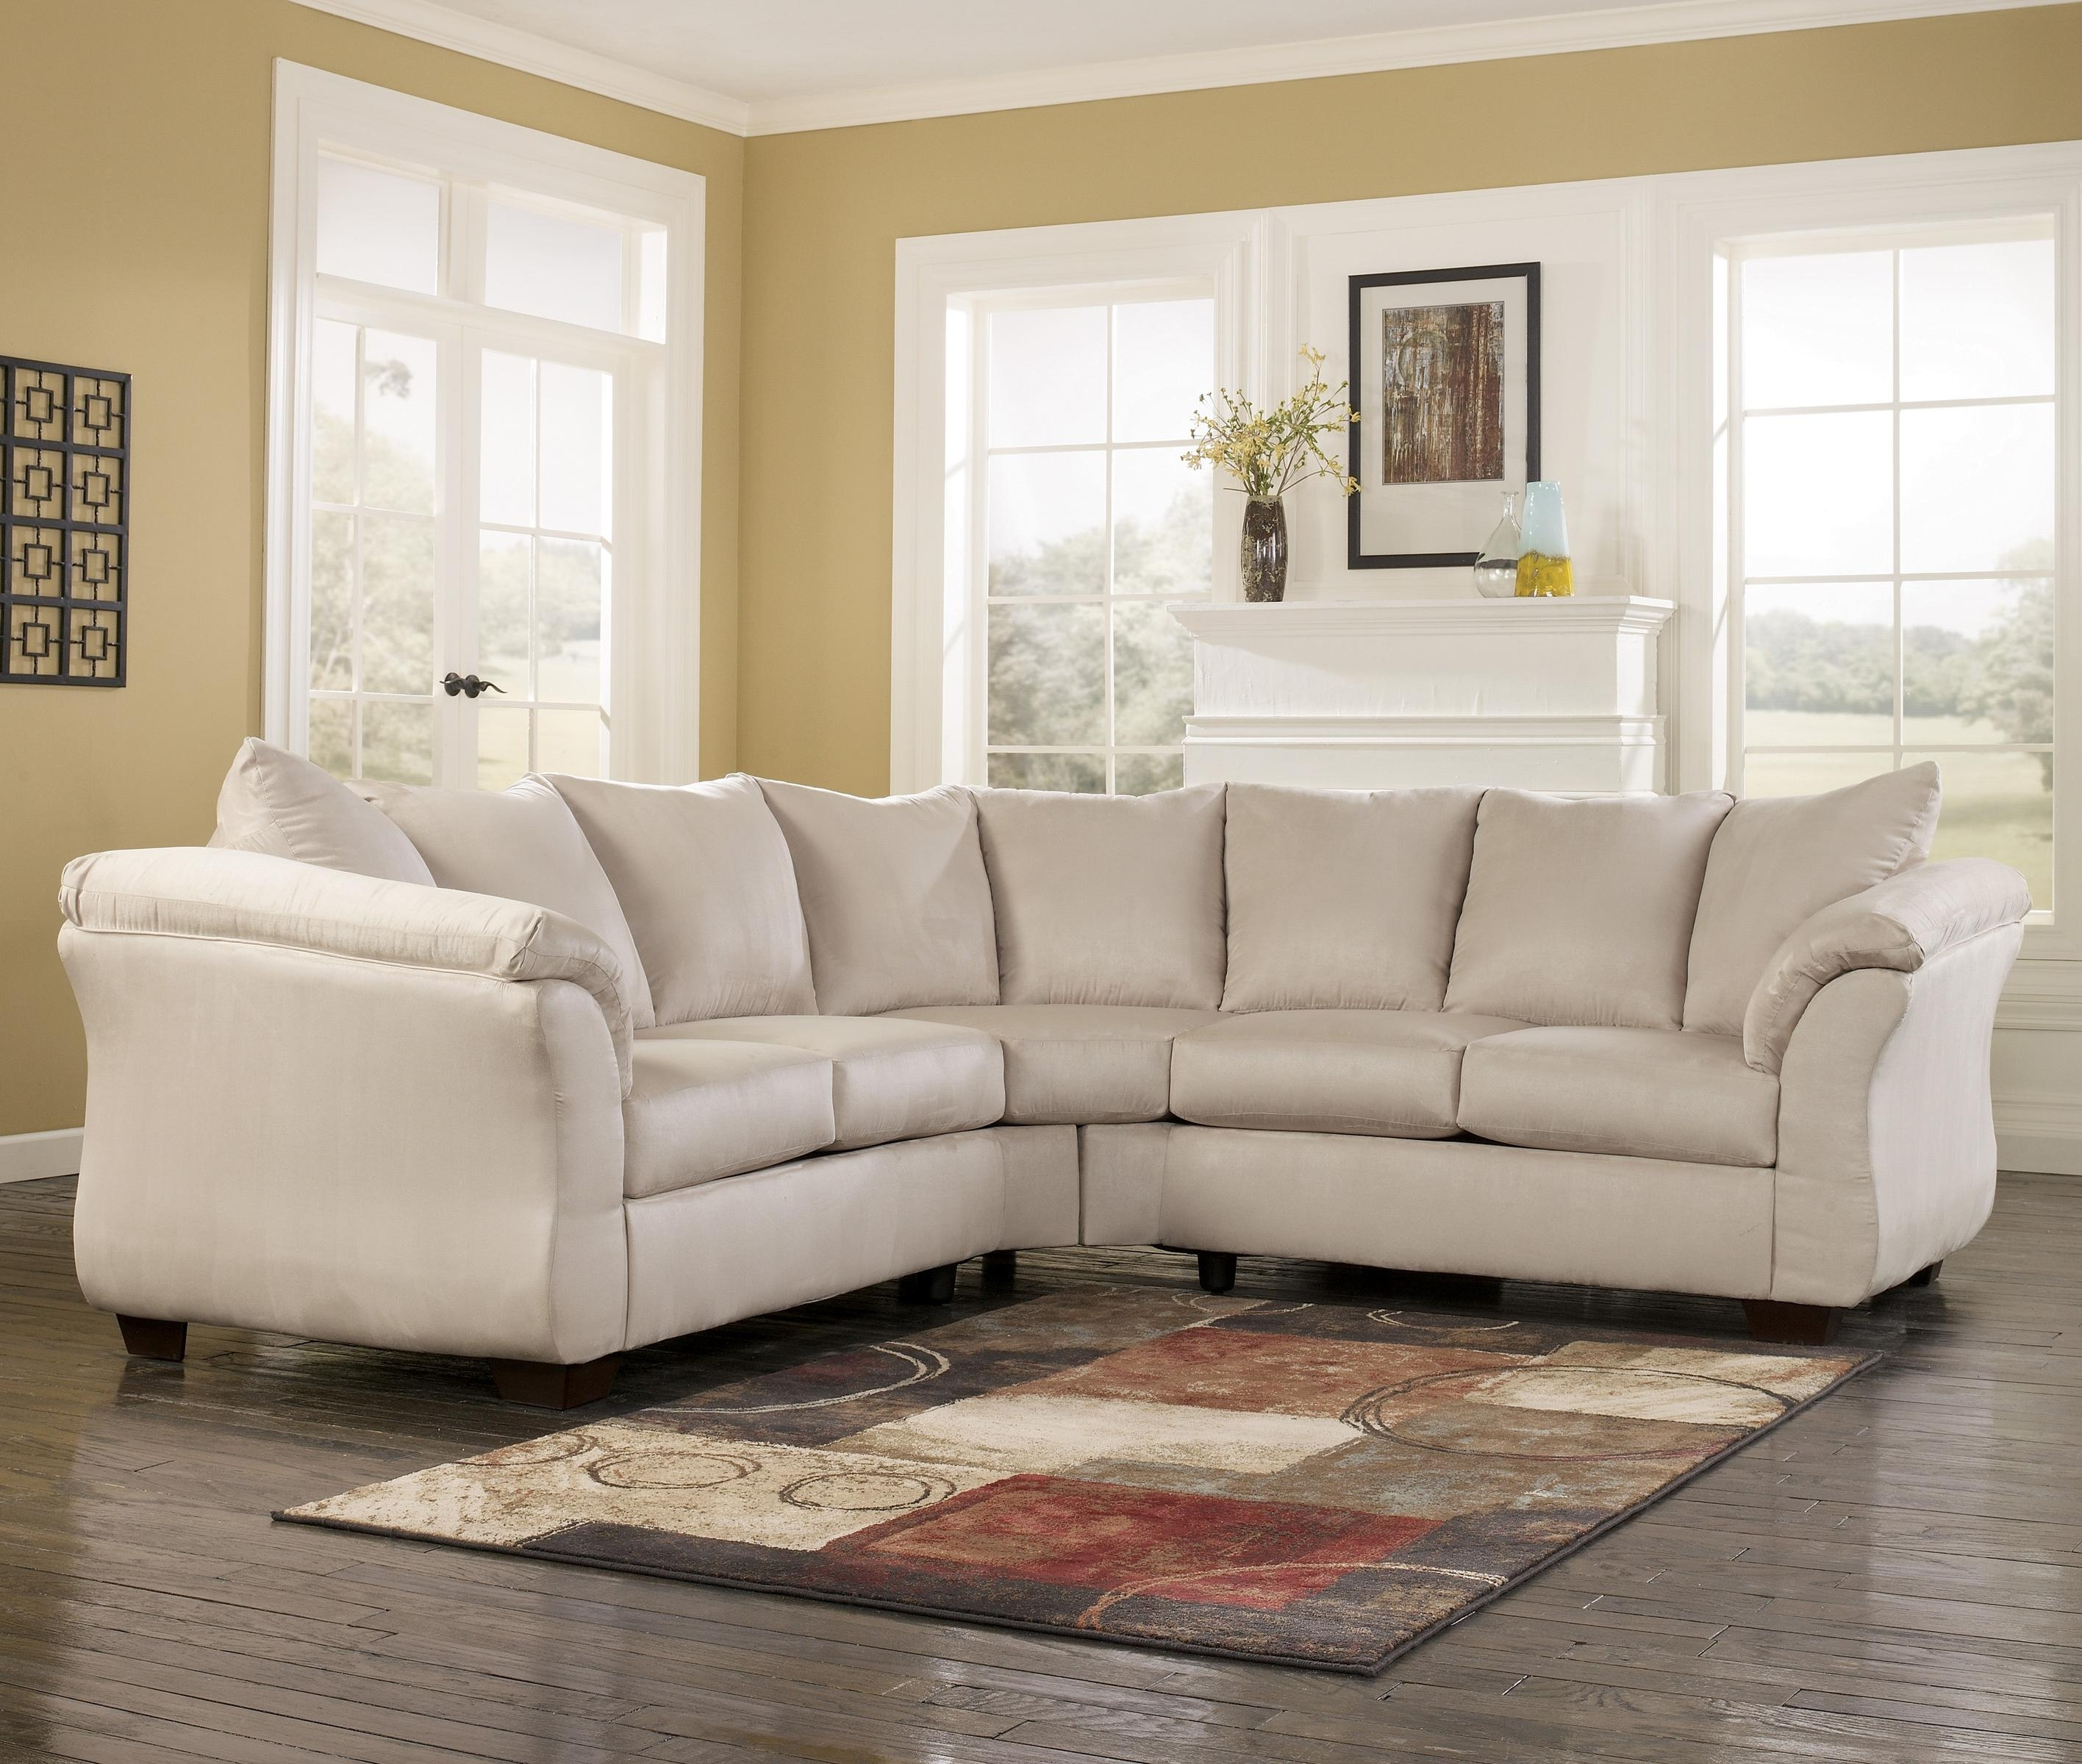 Famous Janesville Wi Sectional Sofas With Regard To Signature Designashley Darcy – Stone Contemporary Sectional (View 20 of 20)